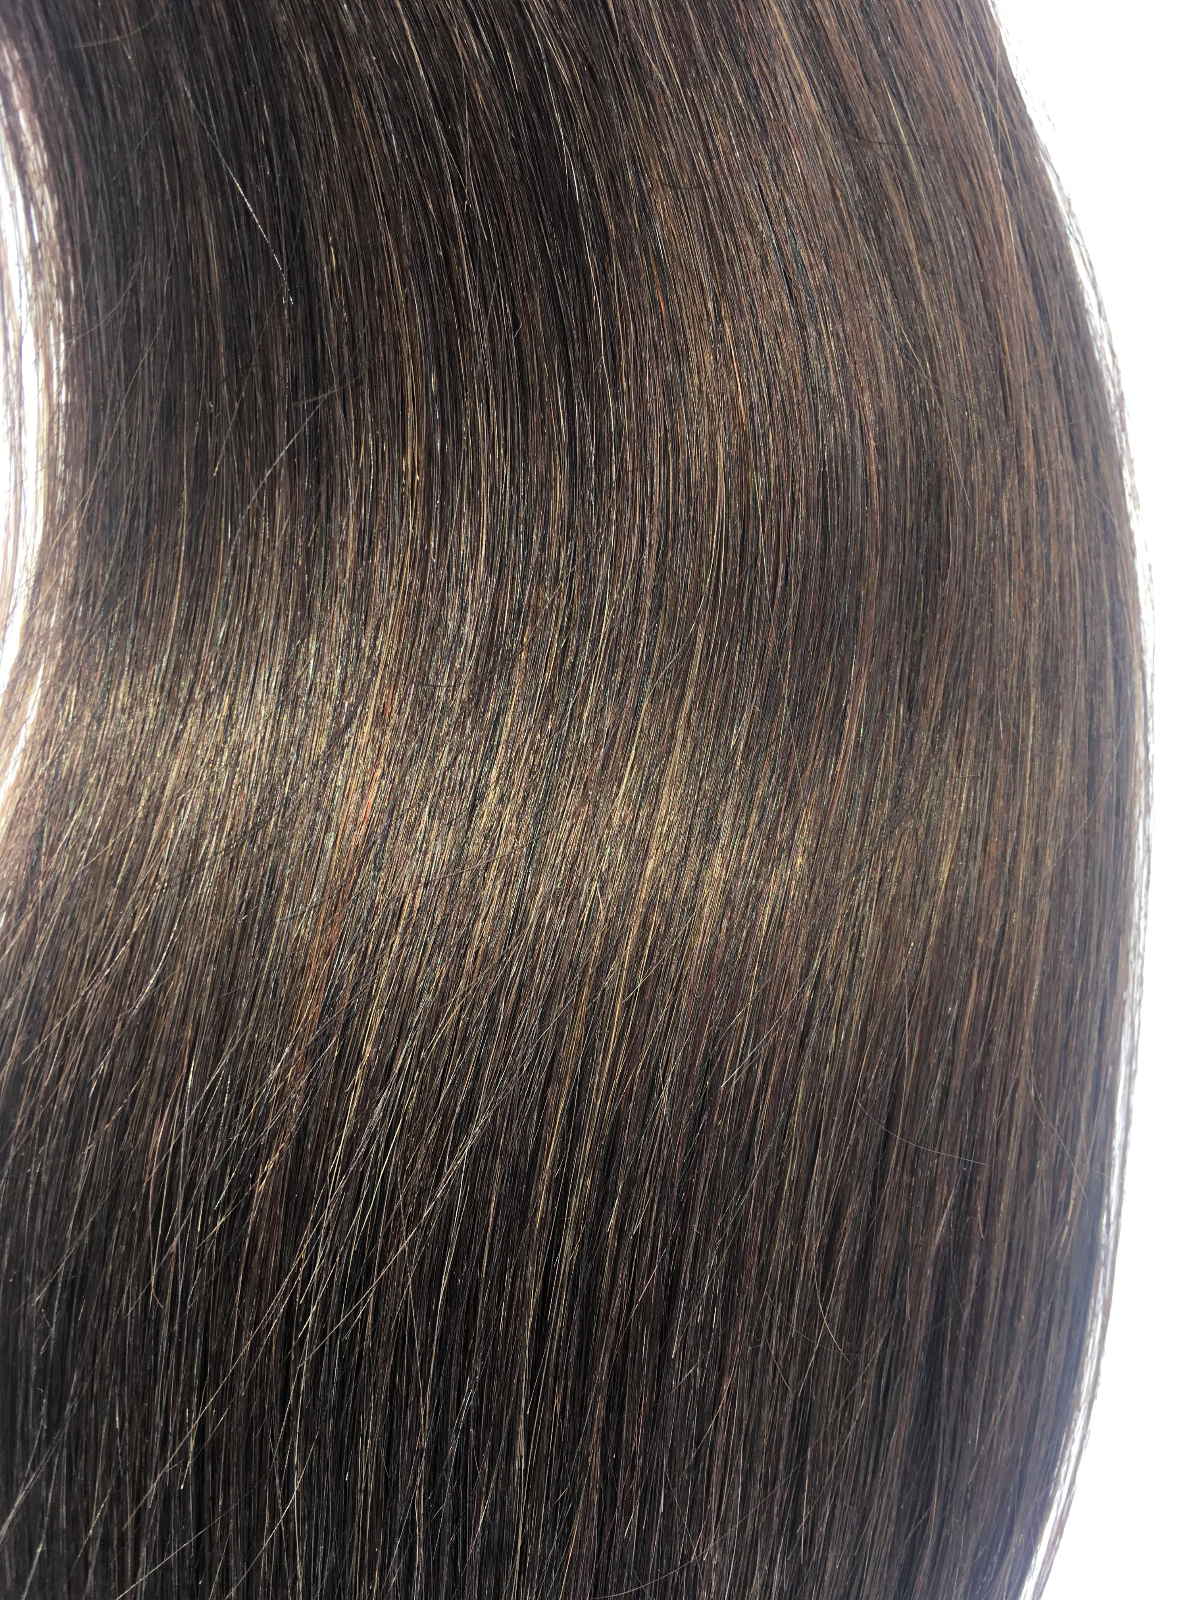 Extra THICK Double Weft Real Clip In Remy Human Hair Extensions Full Head Blonde 4